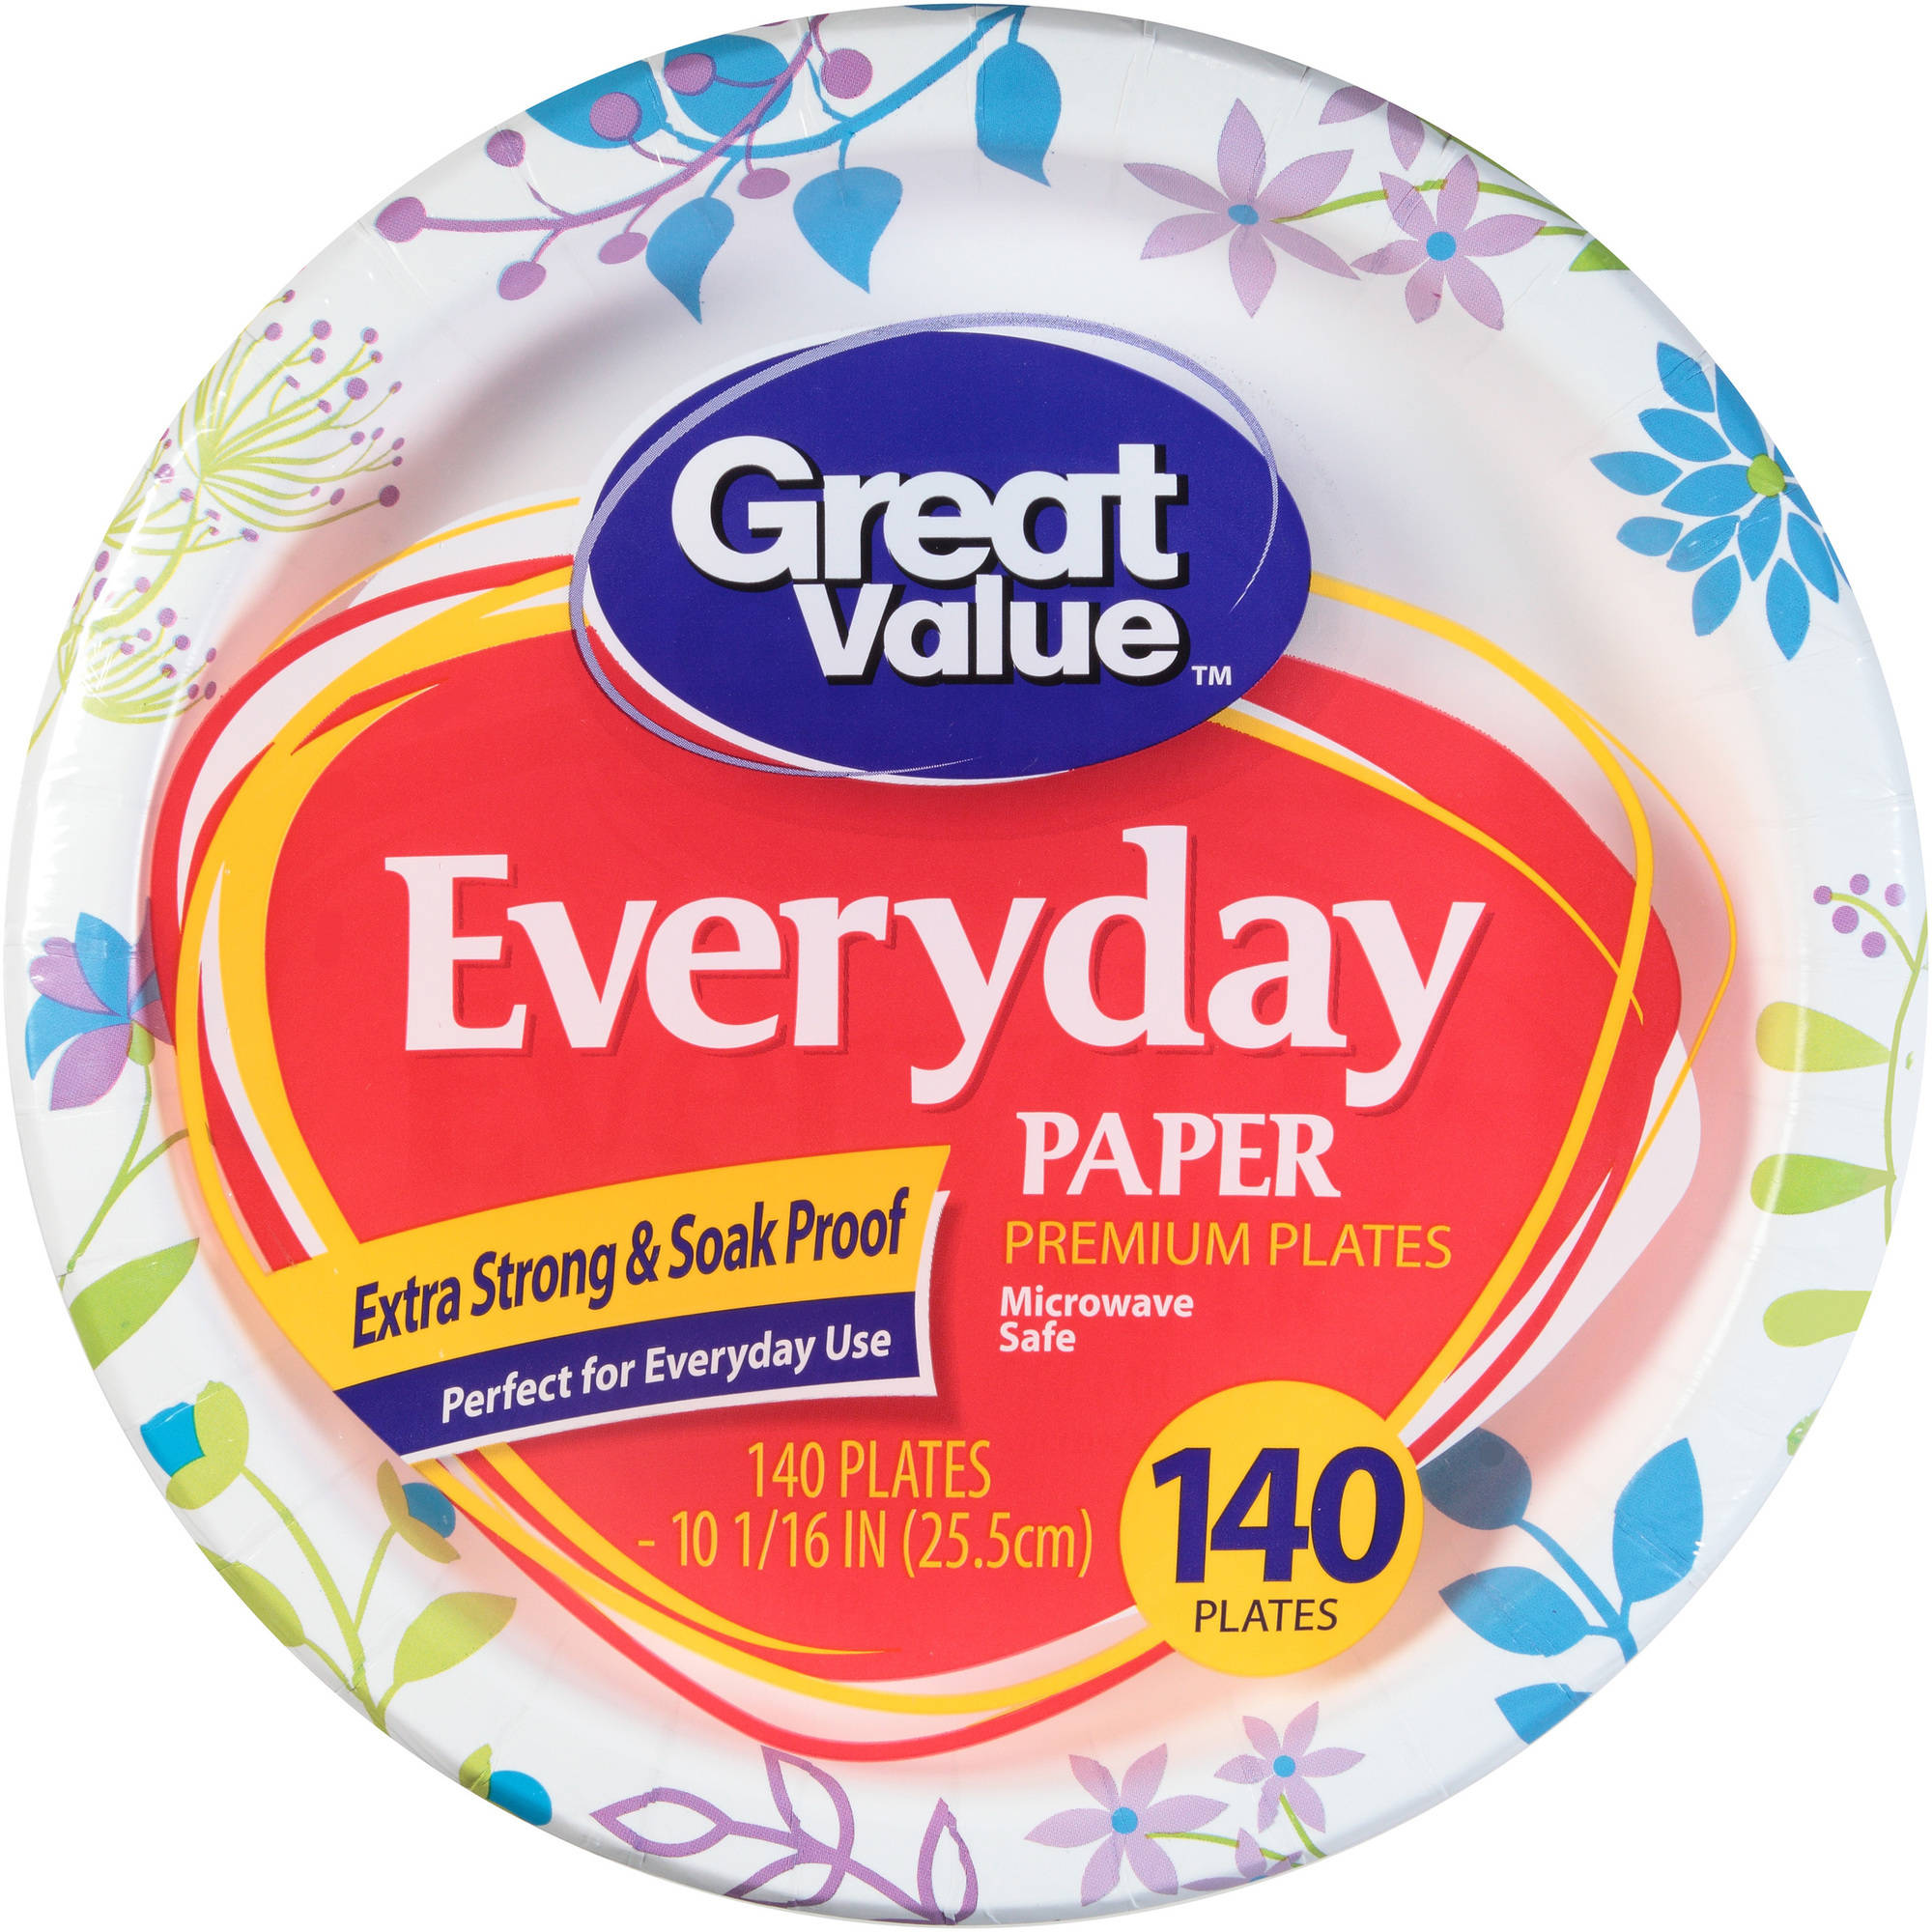 Great Value Everyday Premium Paper Plates 10 1/16  140 Count  sc 1 st  Walmart & Heavyweight Paper Plates